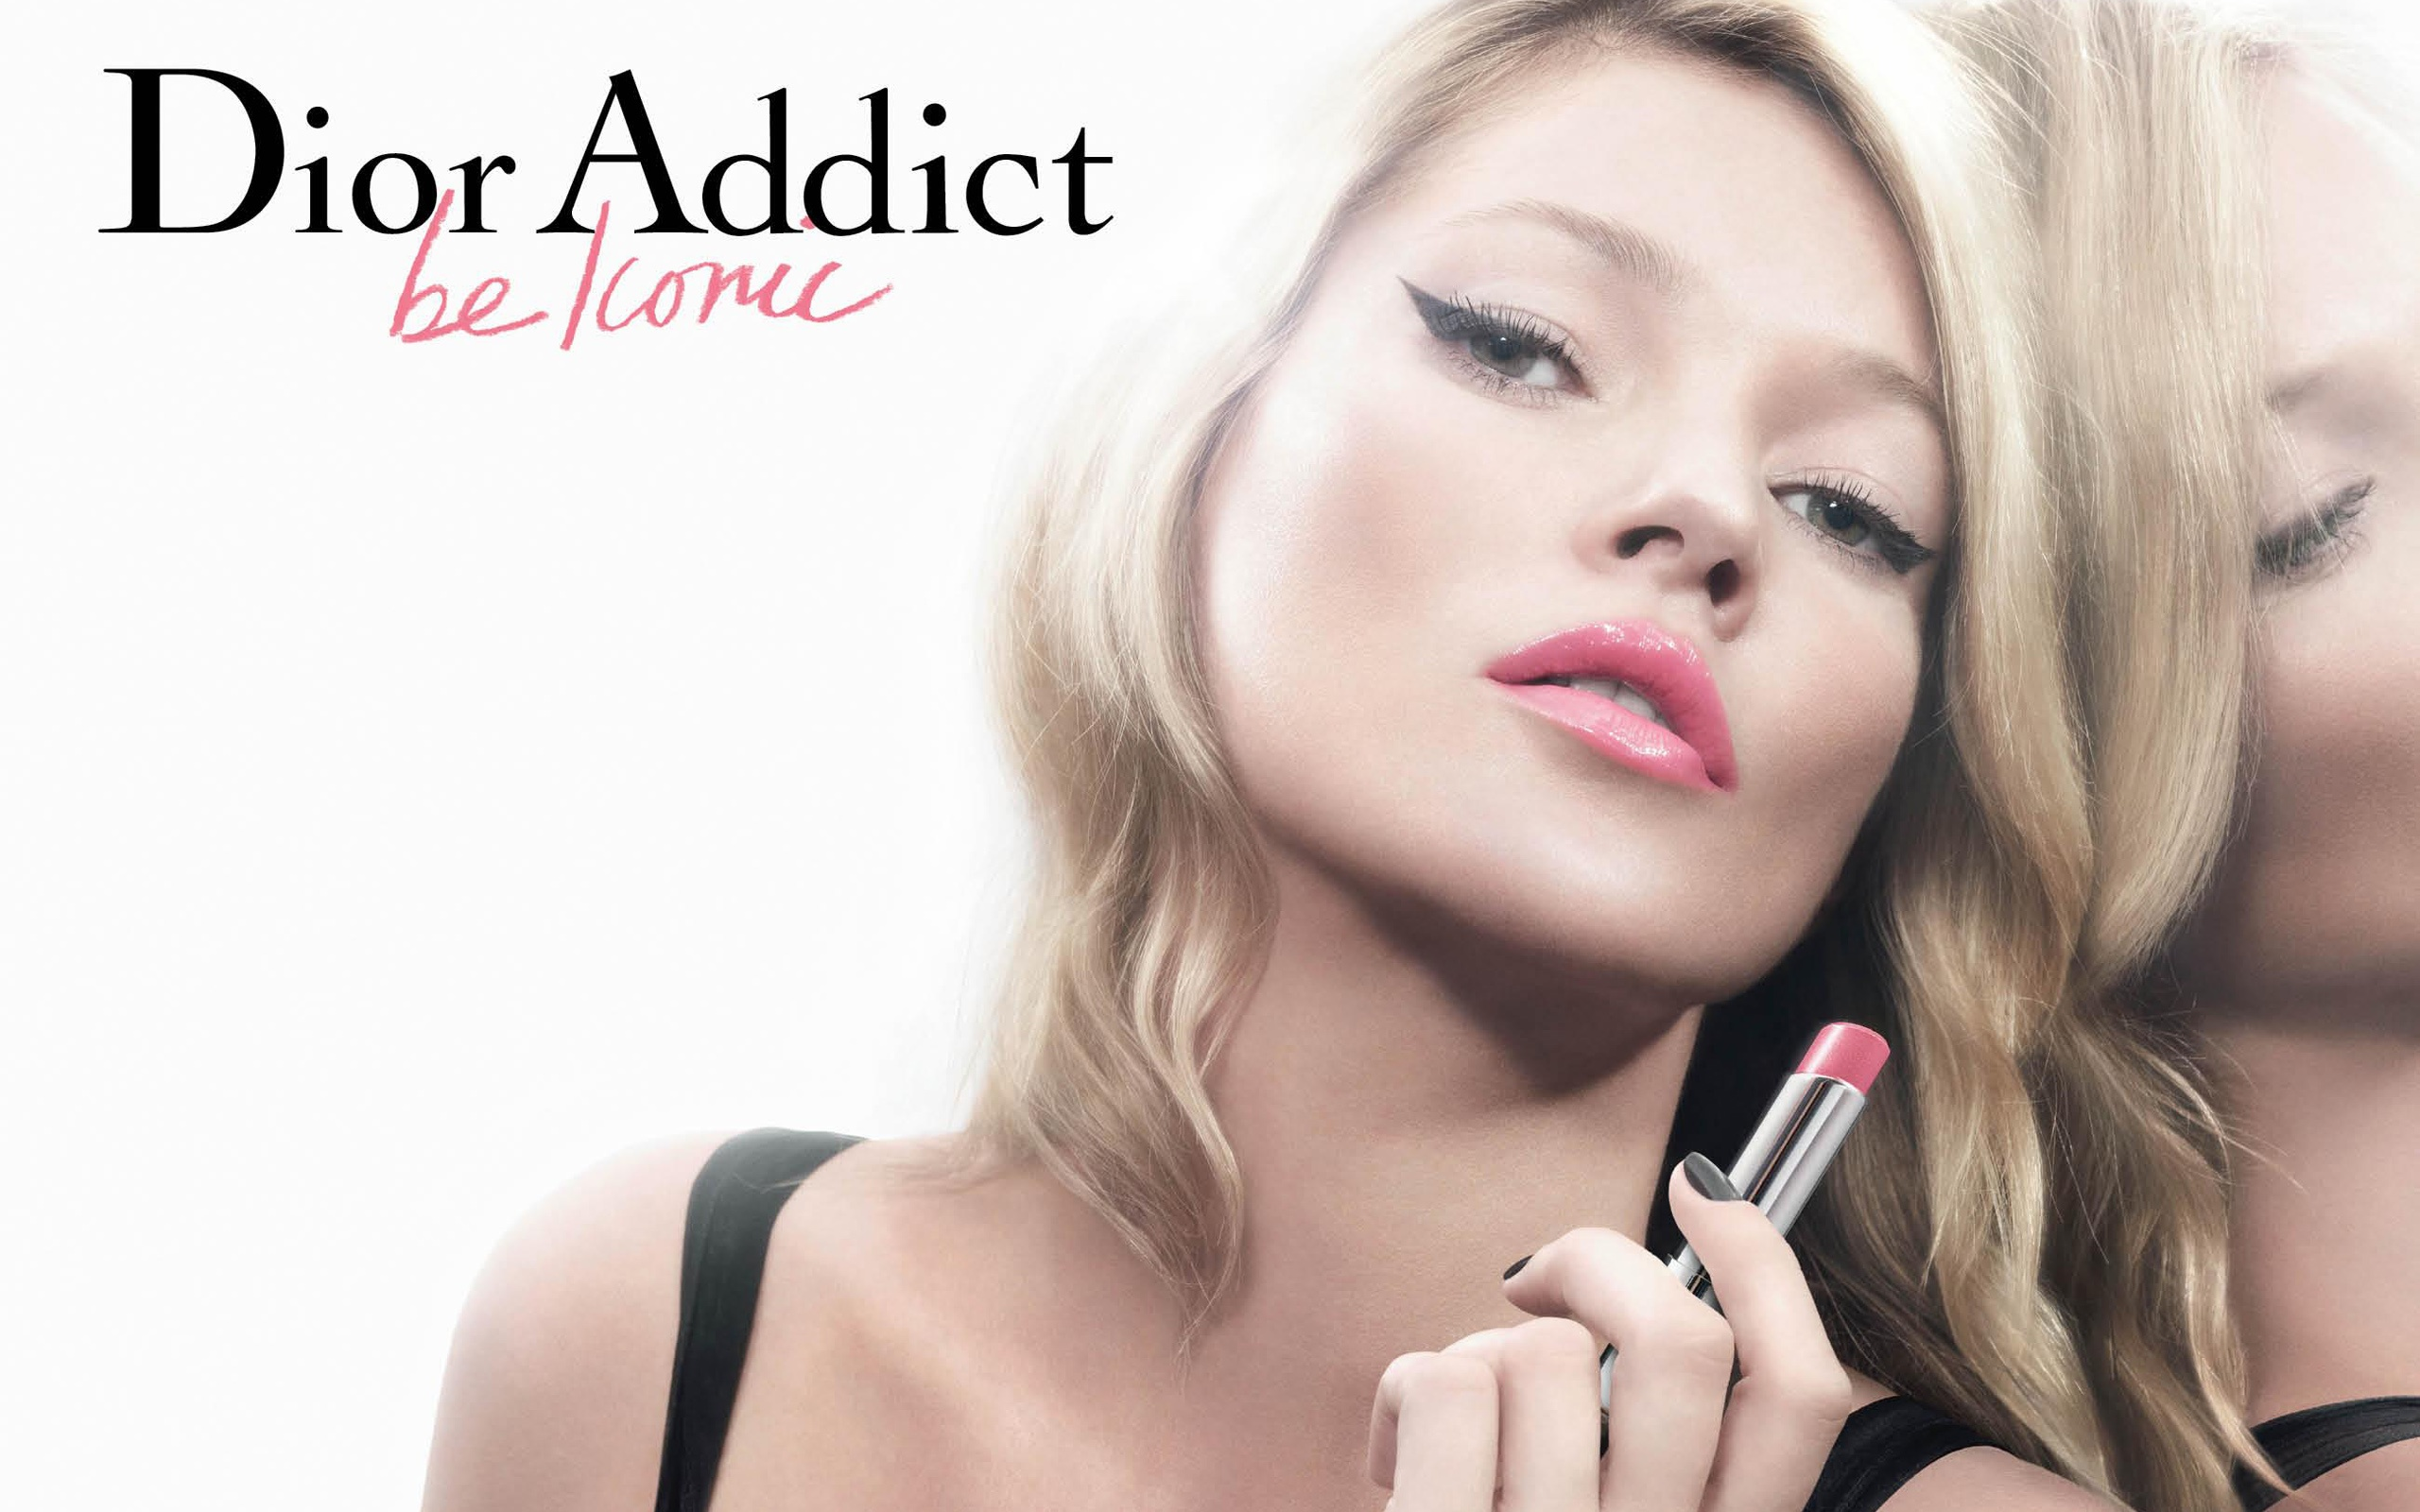 Dior Addict ads wallpaper - 2560x1600